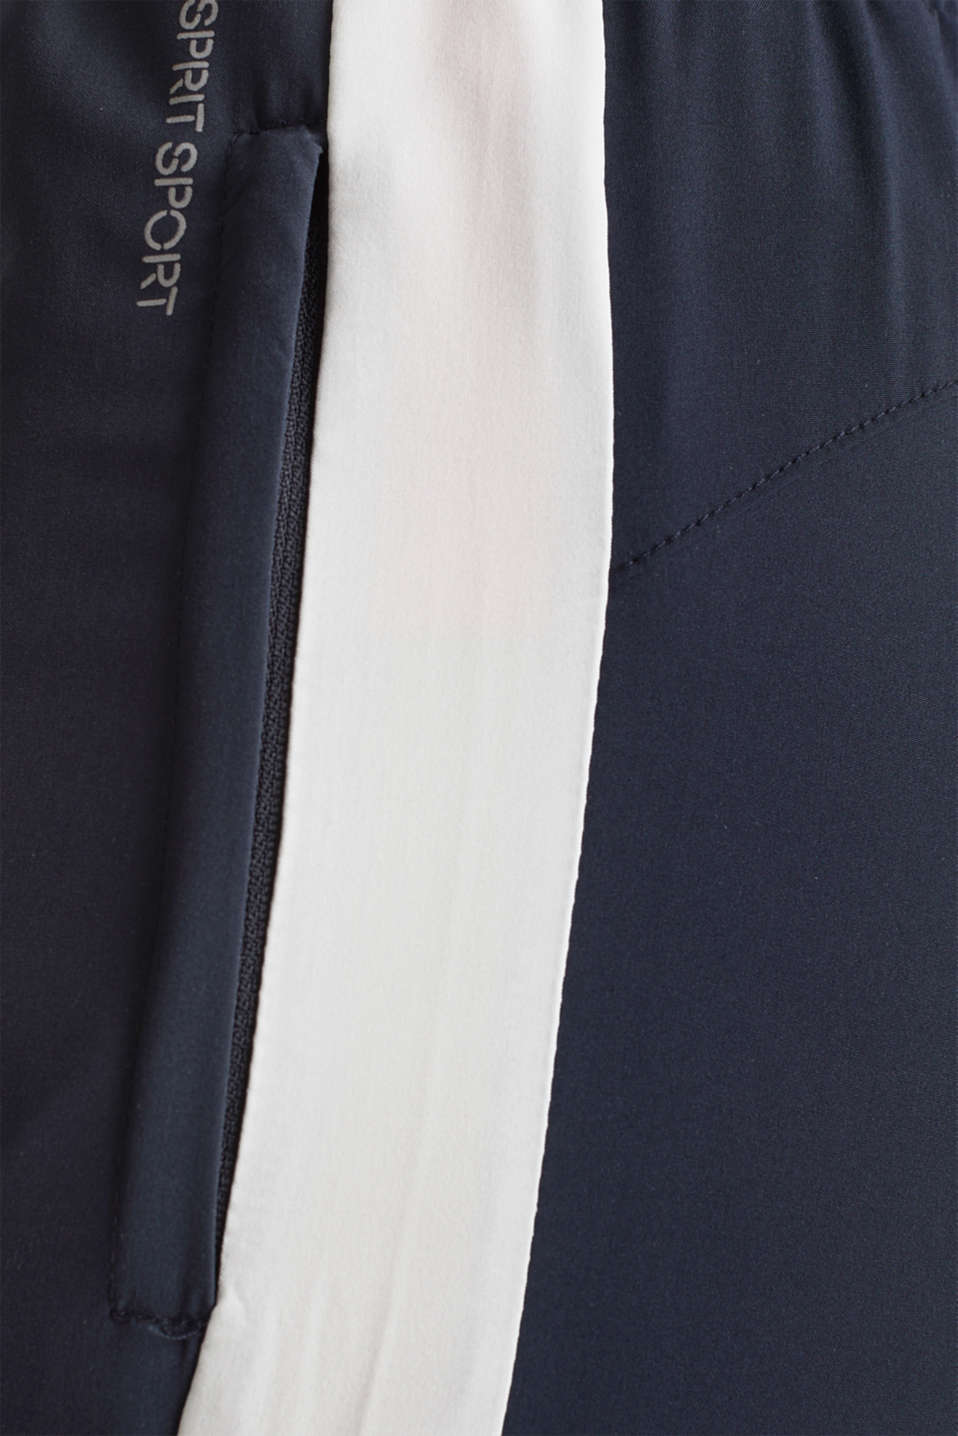 Active trousers with stripes, E-DRY, NAVY 2, detail image number 3